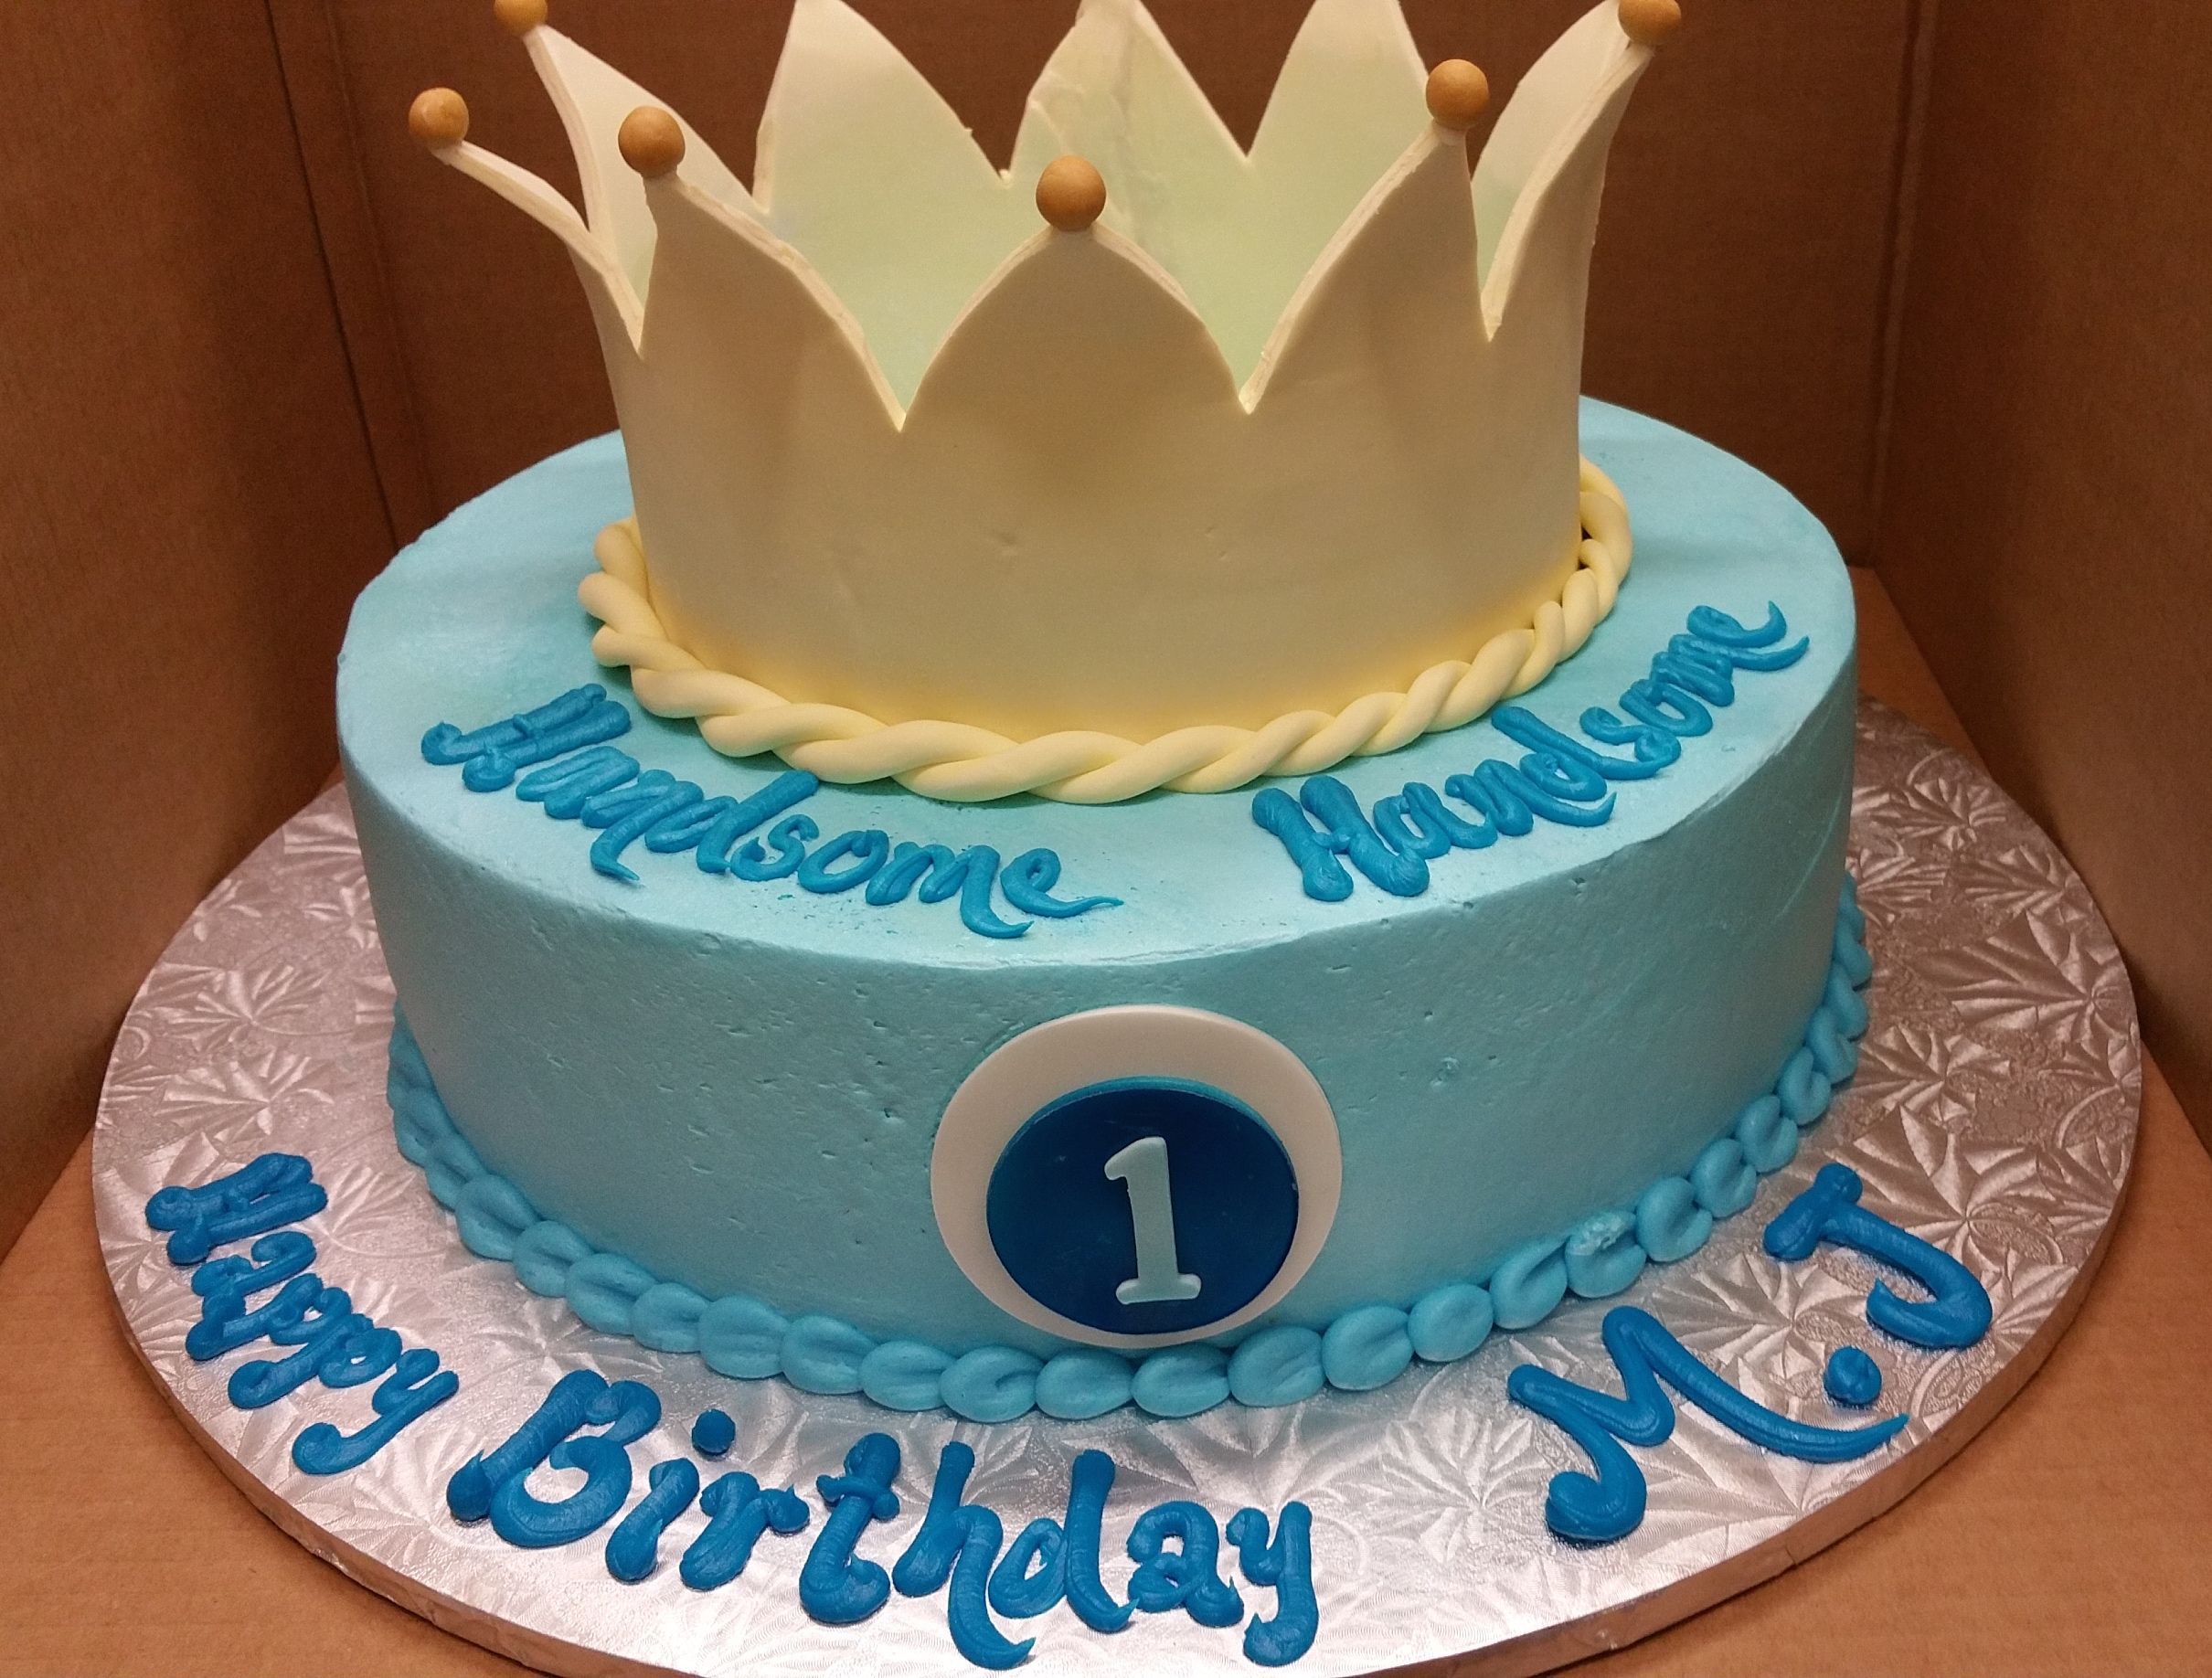 Calumet Bakery 1st Birthday Cake With Crown For Boy